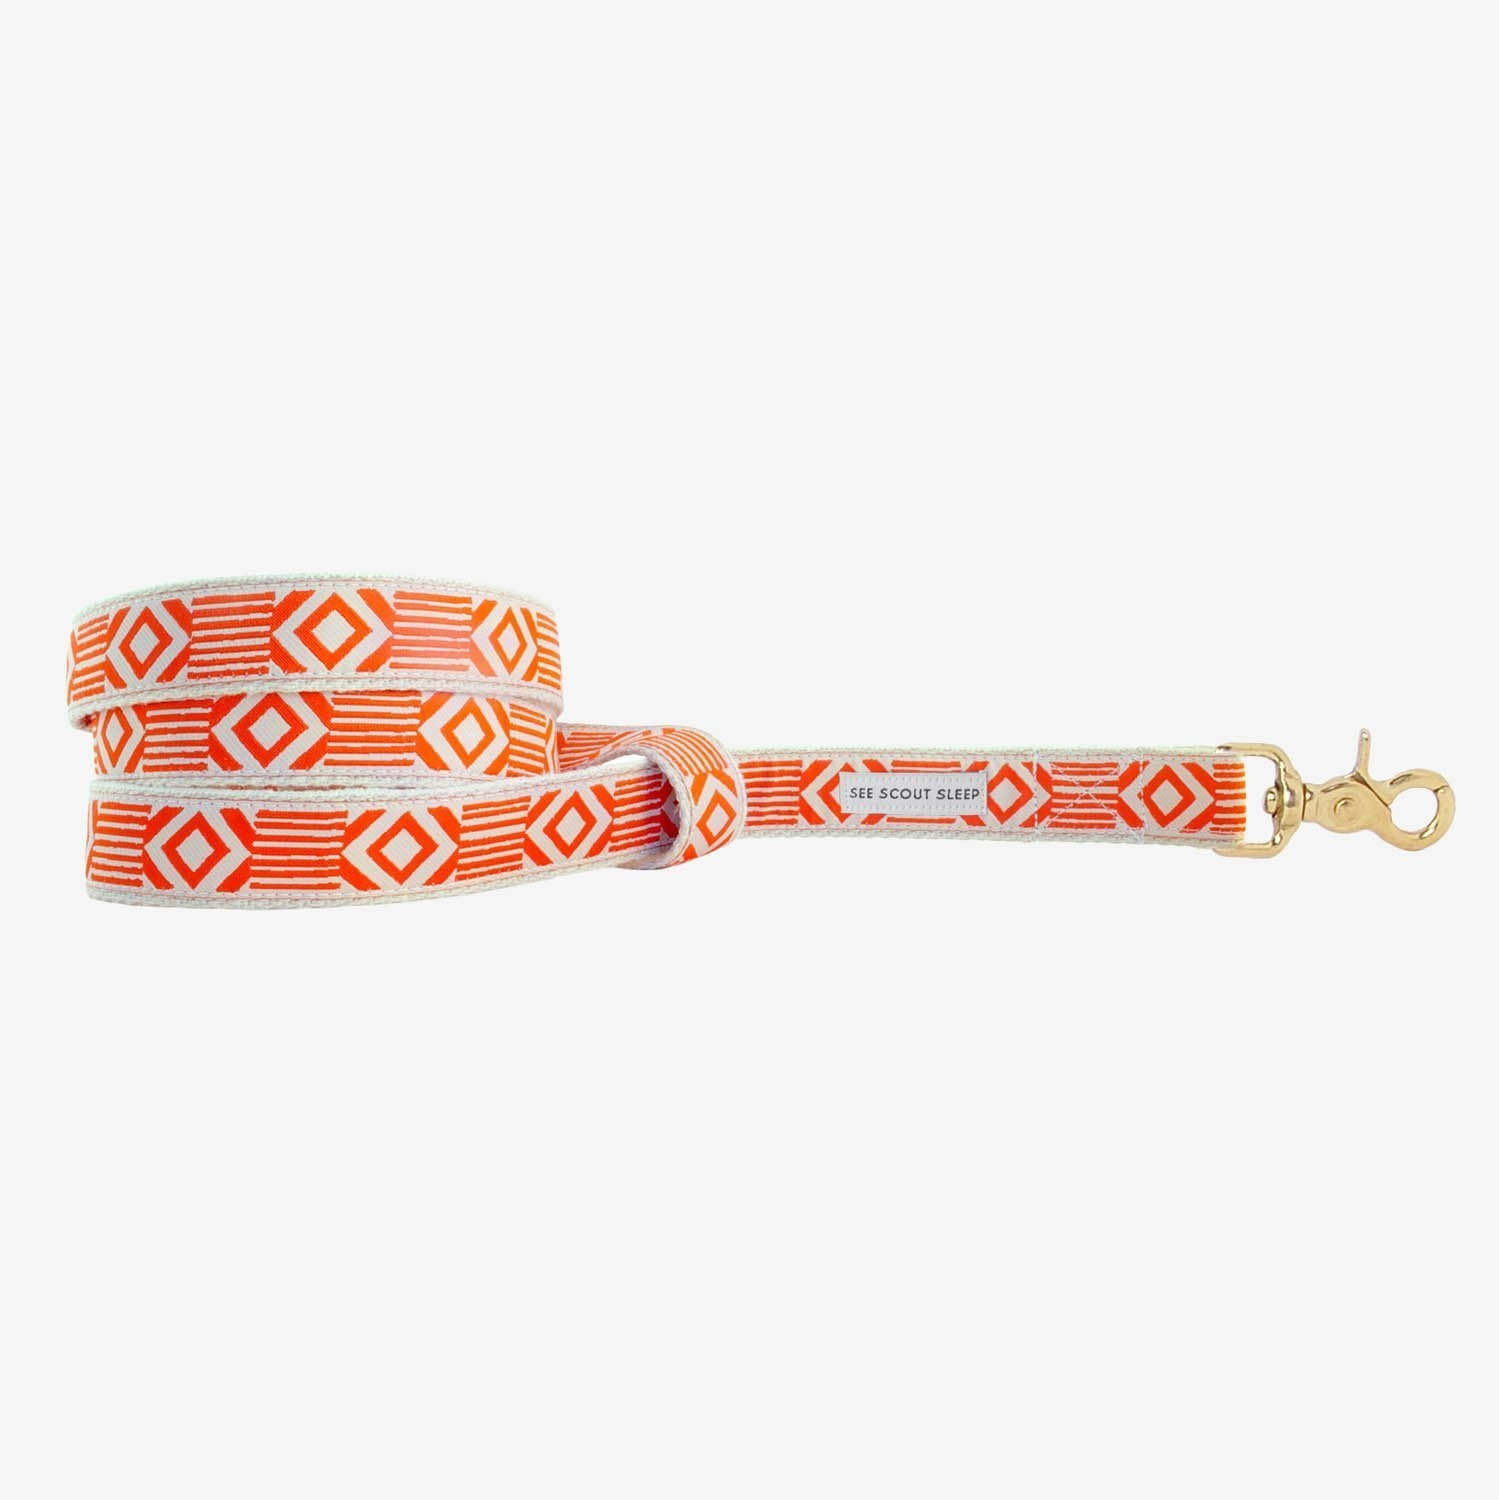 See Scout Sleep Out of the Box Standard Leash - Vermillion and Cream